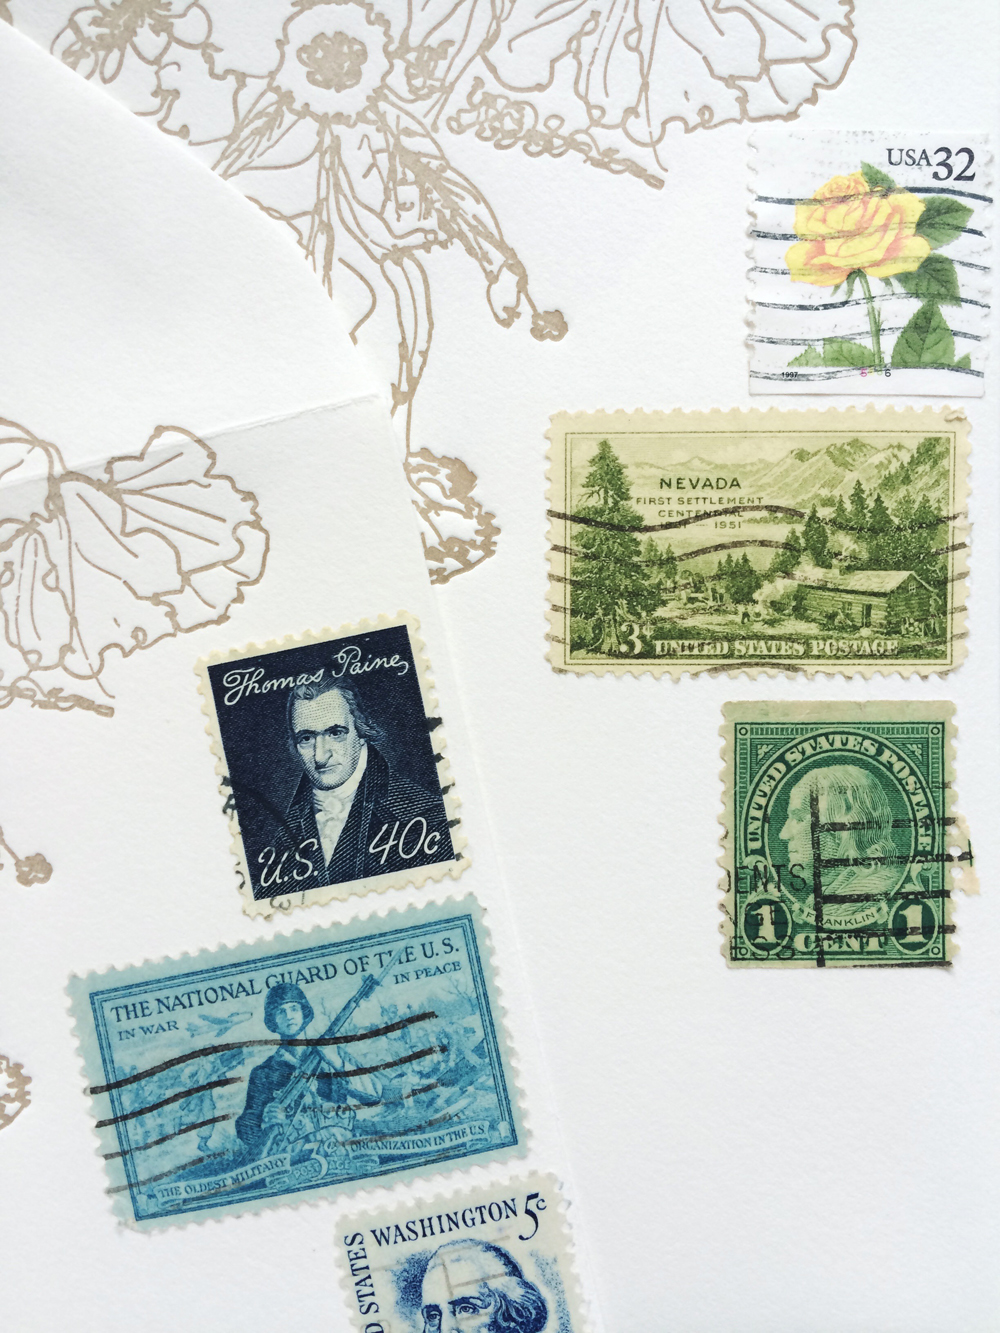 Vintage (canceled) postage